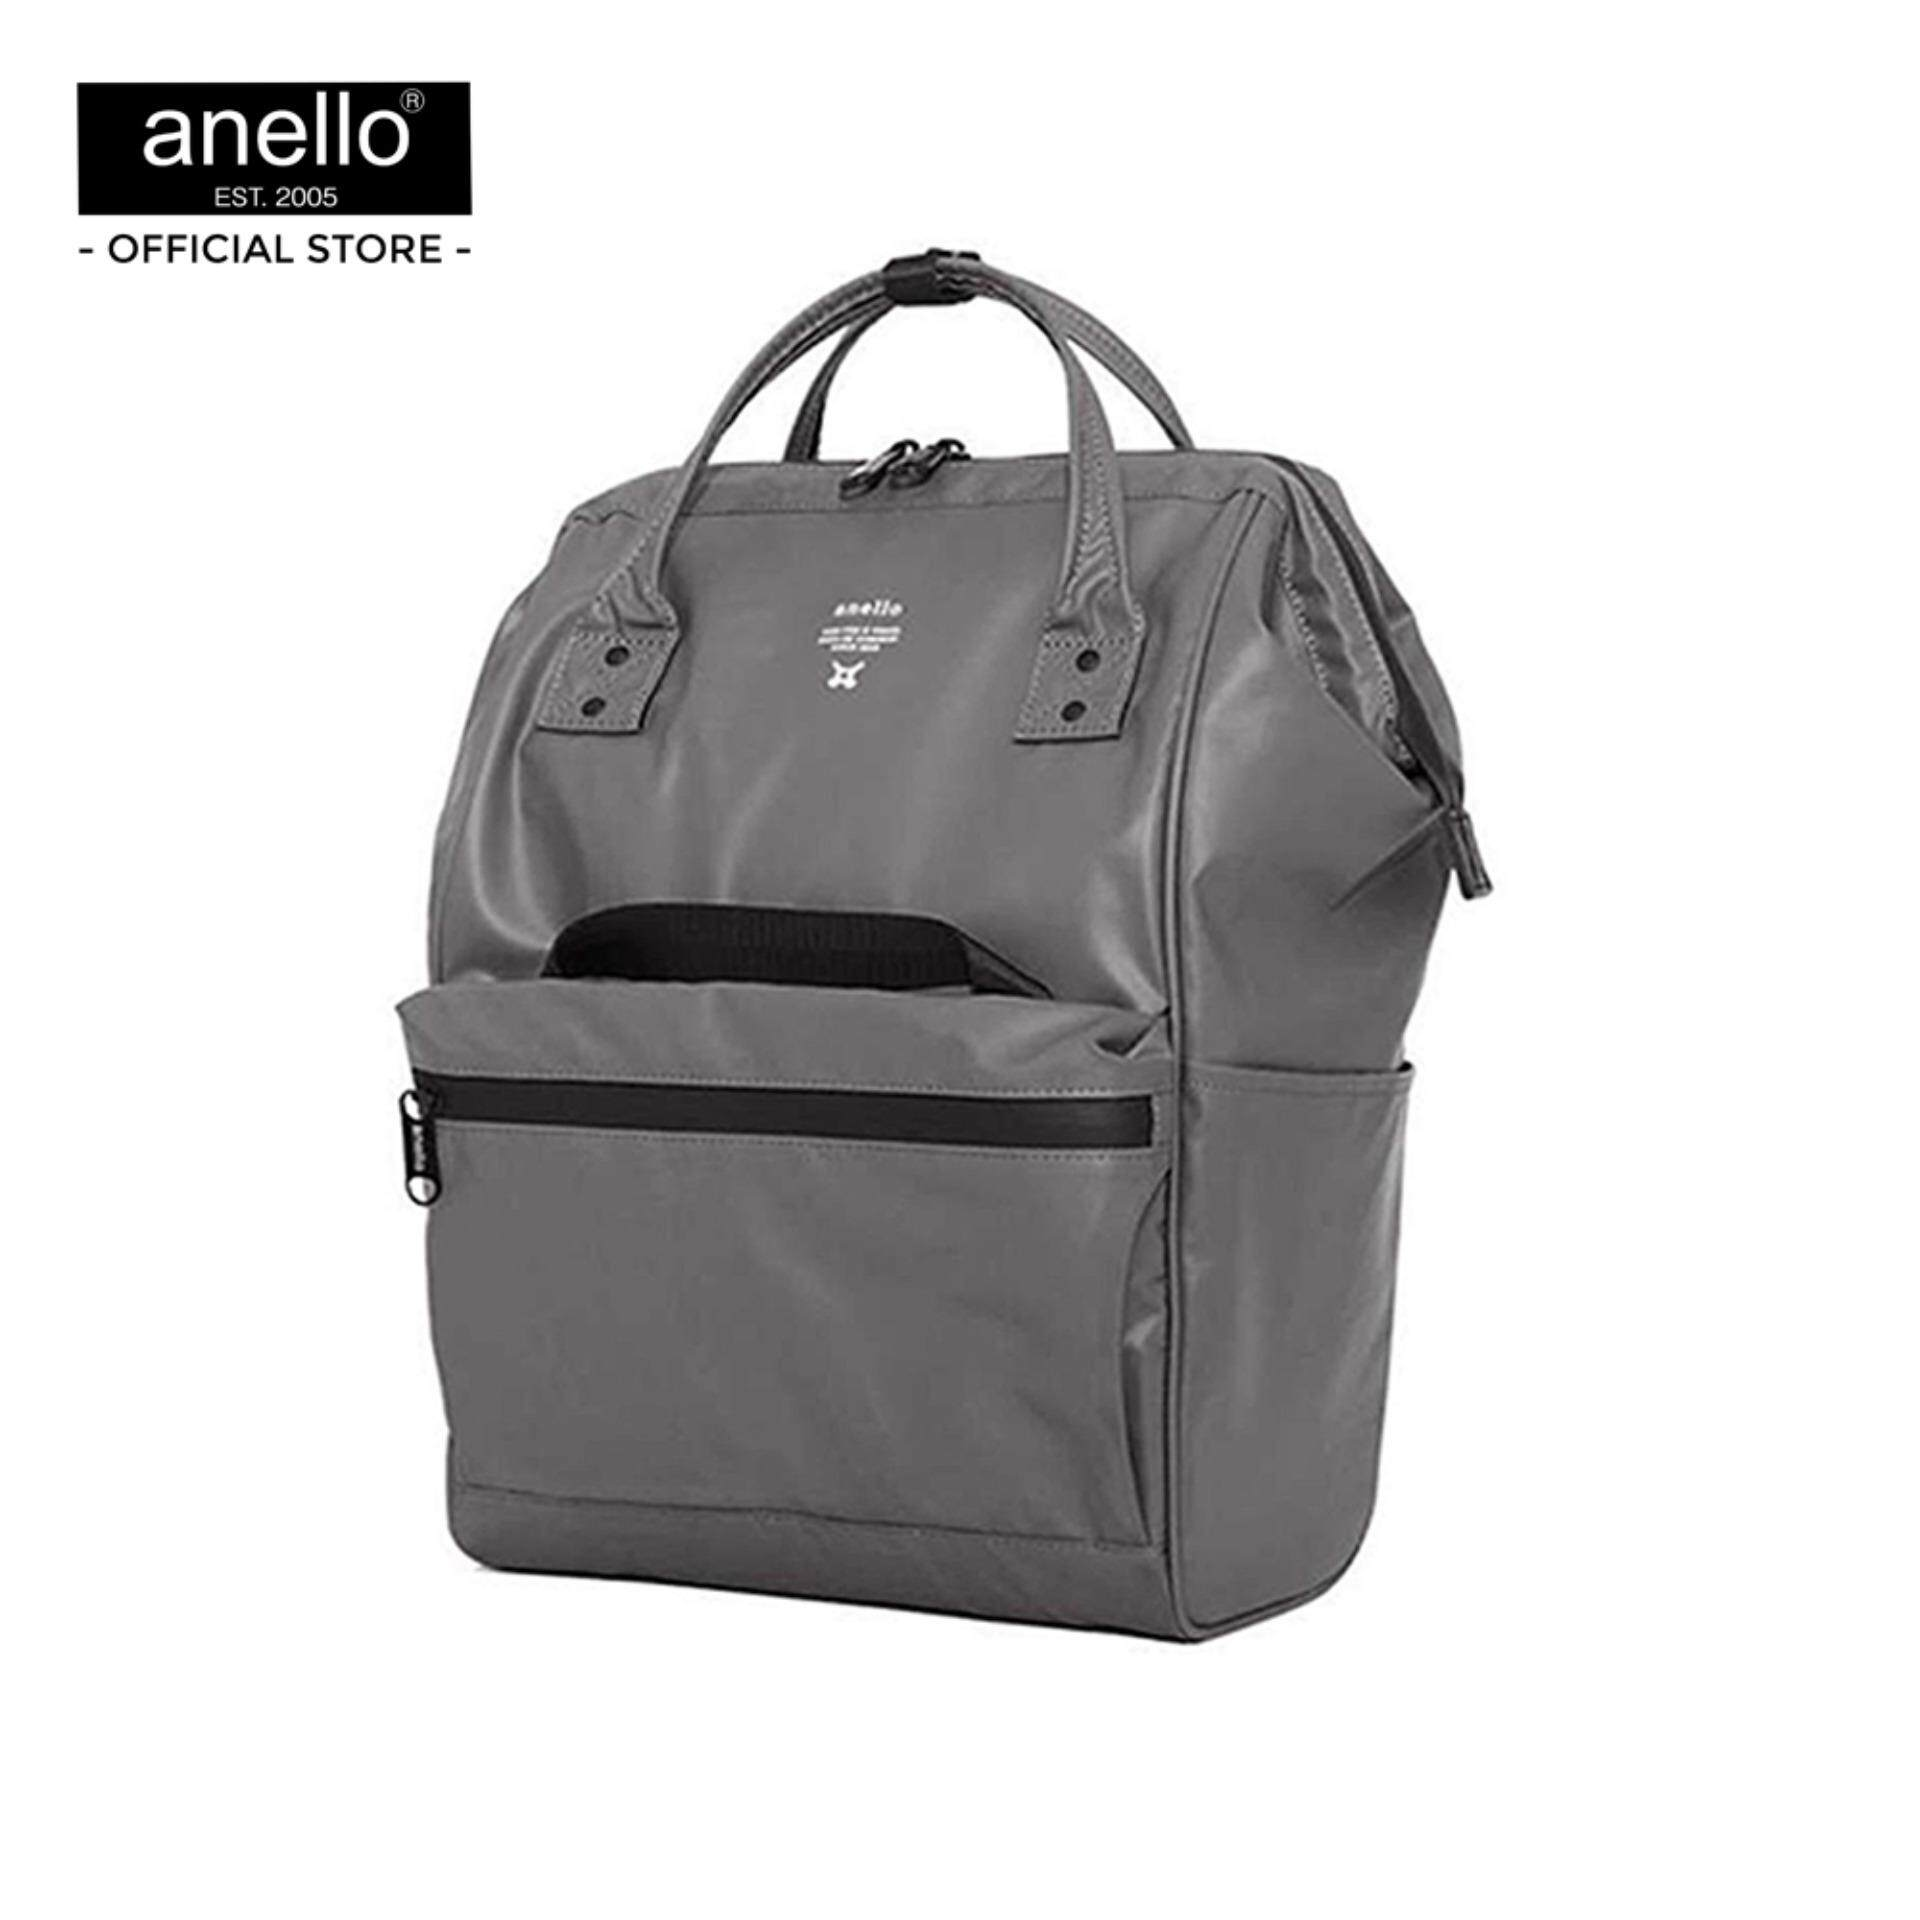 anello กระเป๋า Regular Water Resistant 2nd Edition_OS-B001